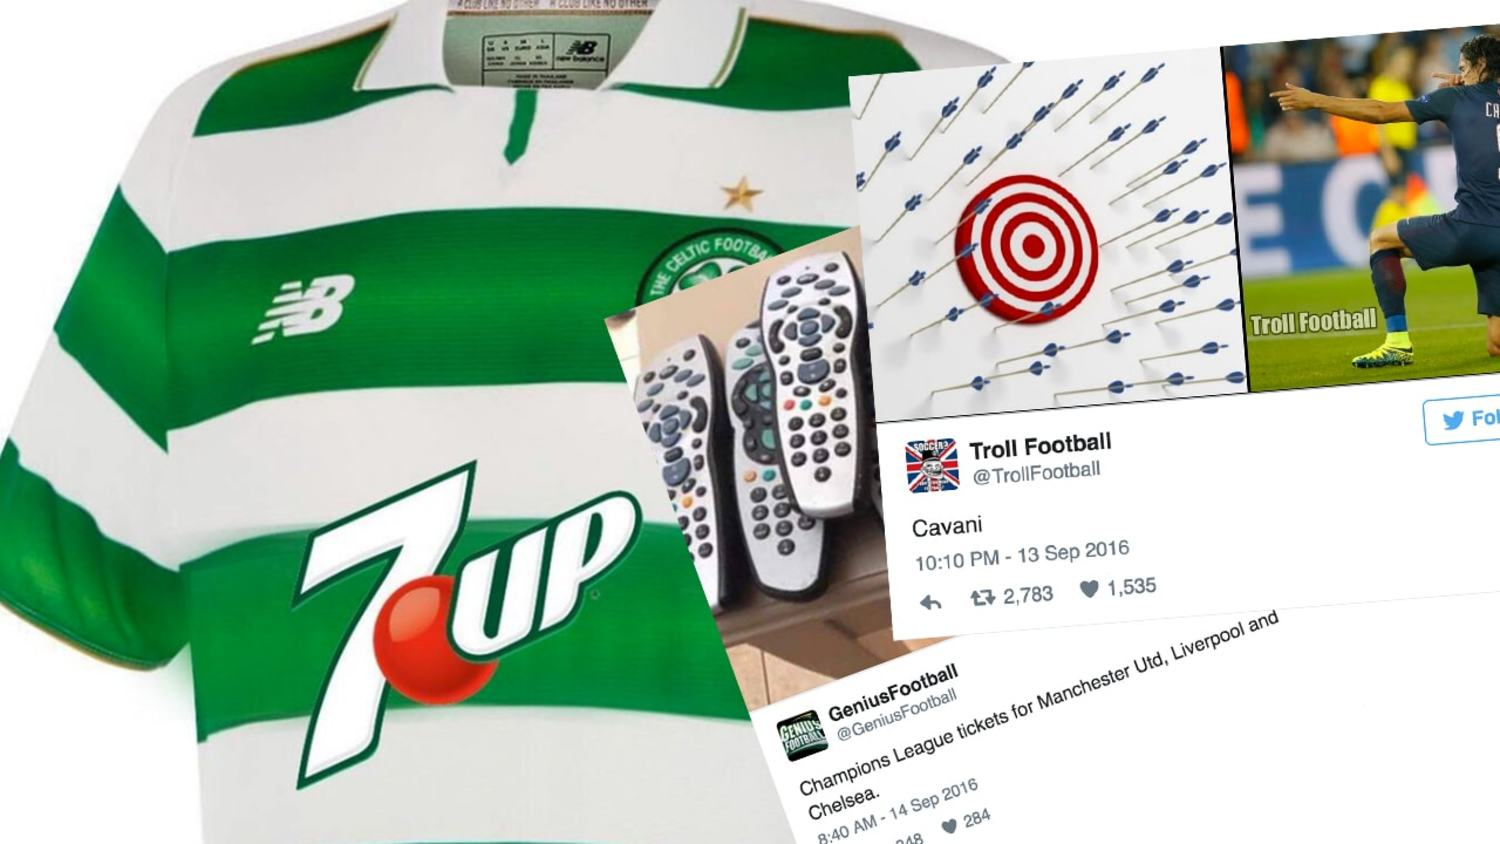 How The Internet Reacted To The Champions League Return